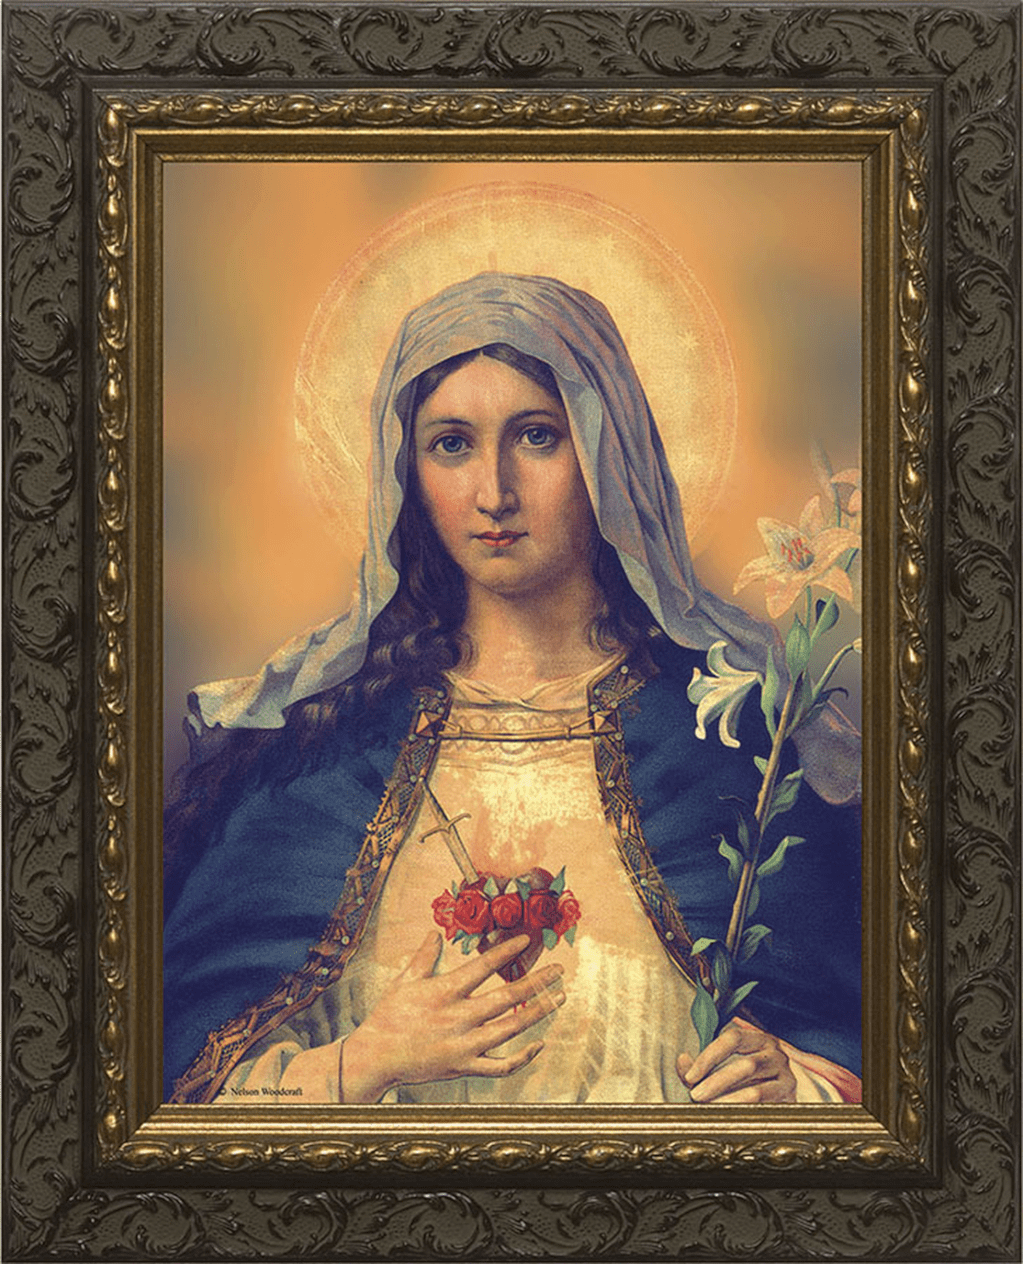 Nelsons Gifts Immaculate Heart of Mary Ornate Dark Framed Wall Art Picture